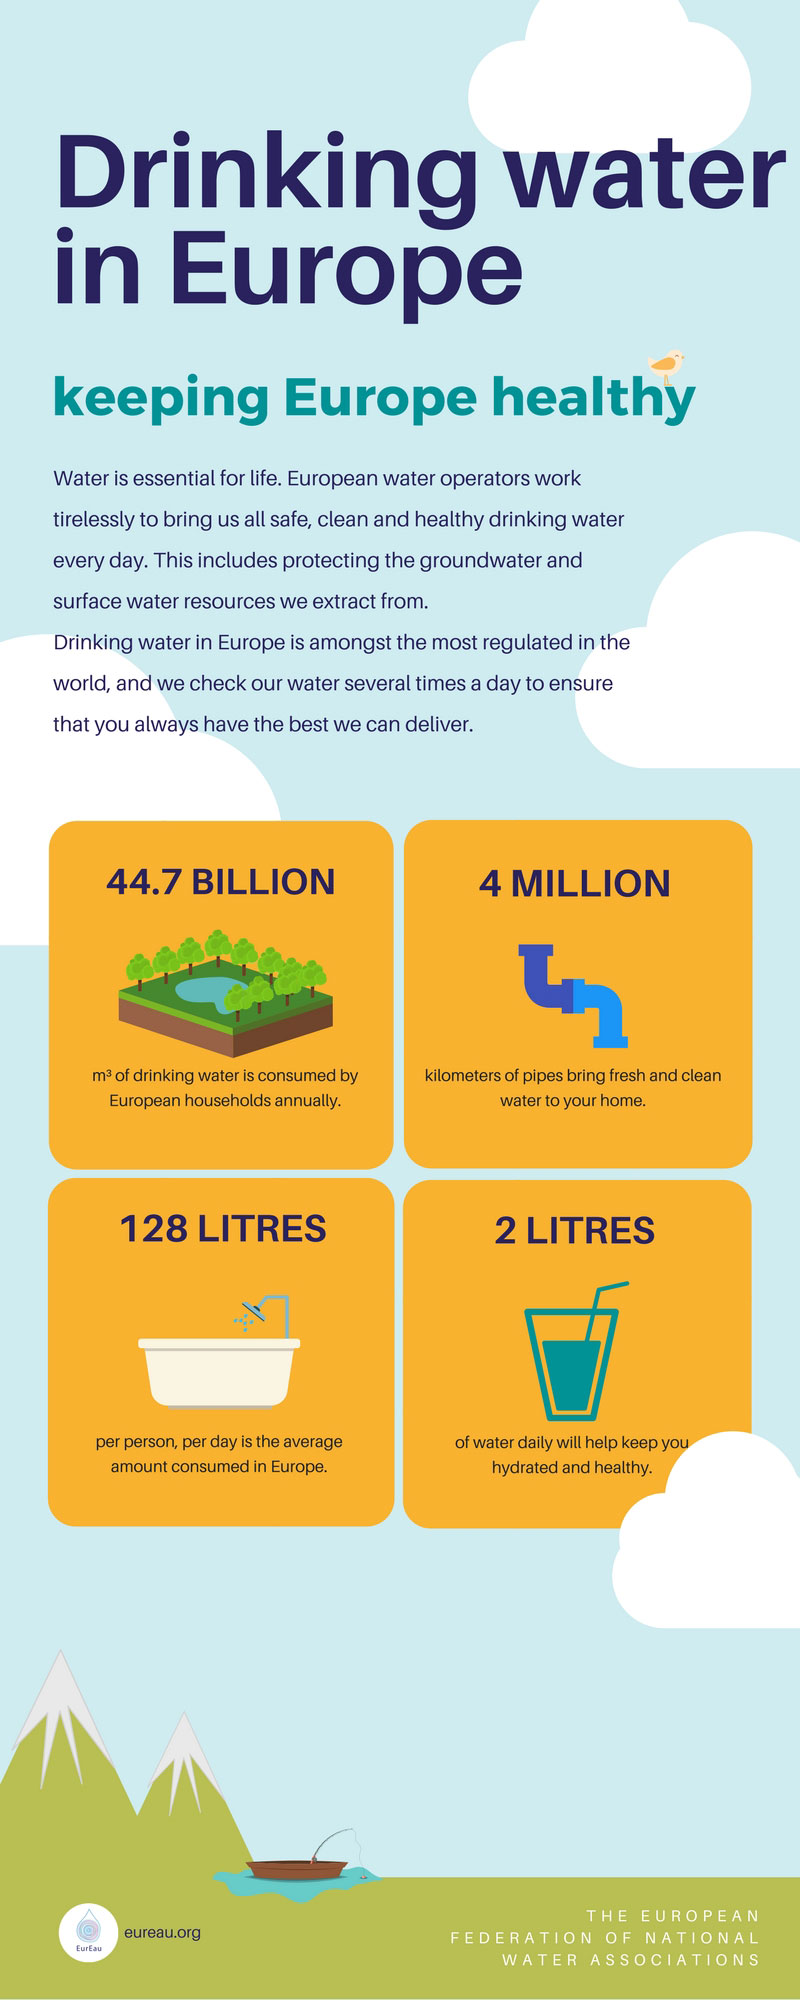 EurEau - Our sector - The European water sector